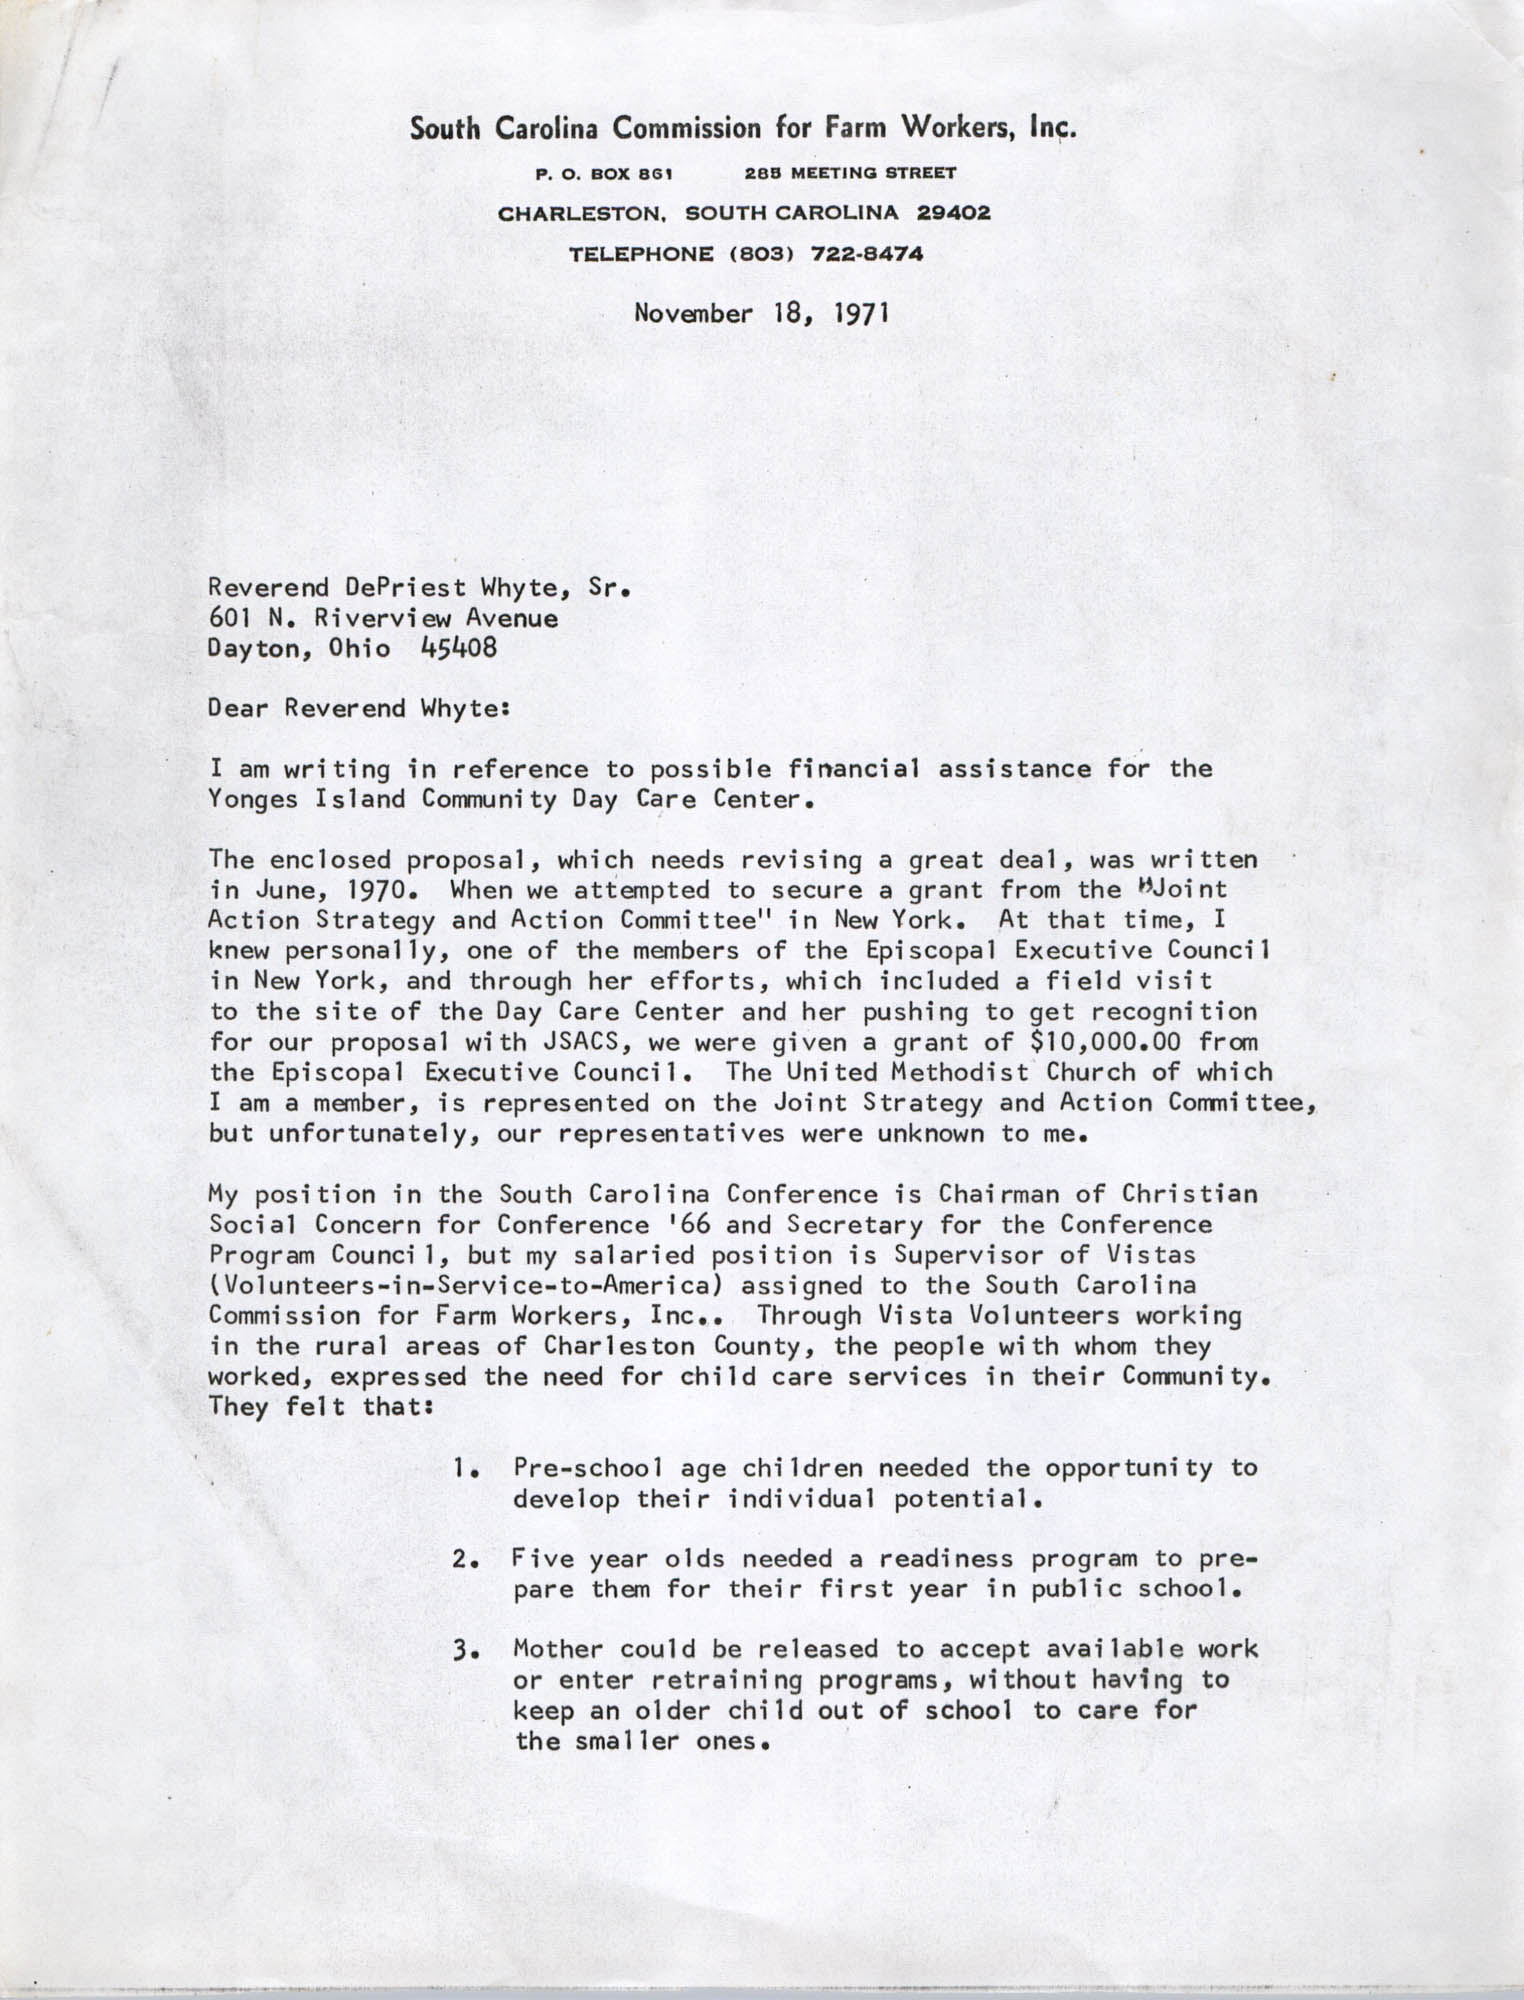 Letter from Bernice Robinson to DePriest Whyte, Sr., November 18, 1971, Page 1